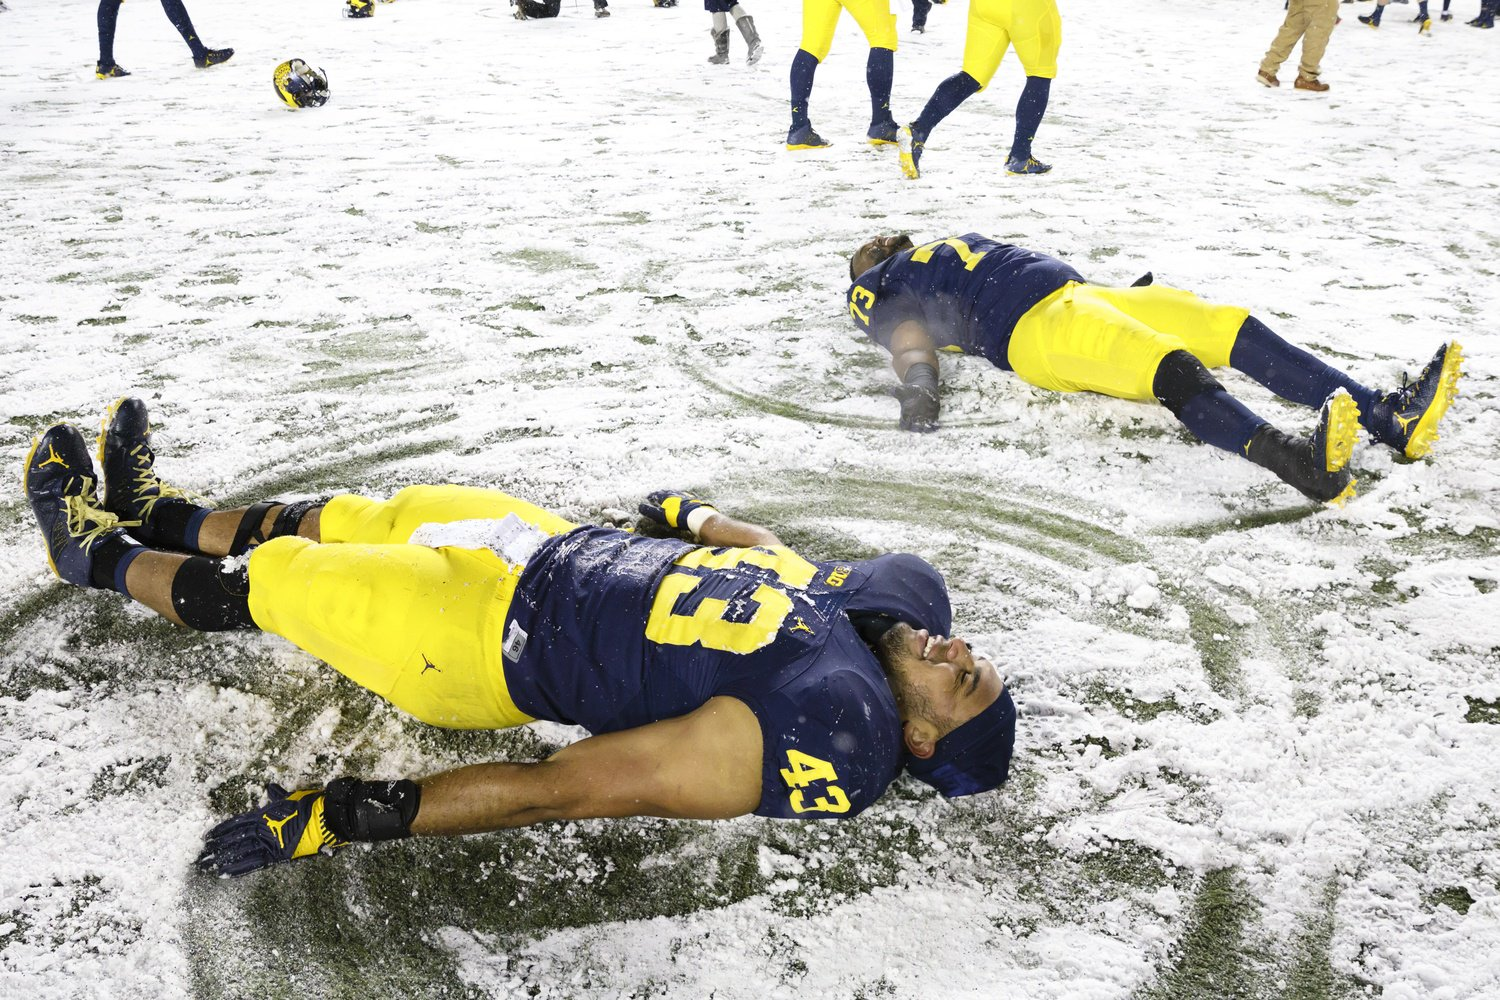 wormley-hurst-snow-vs-iu